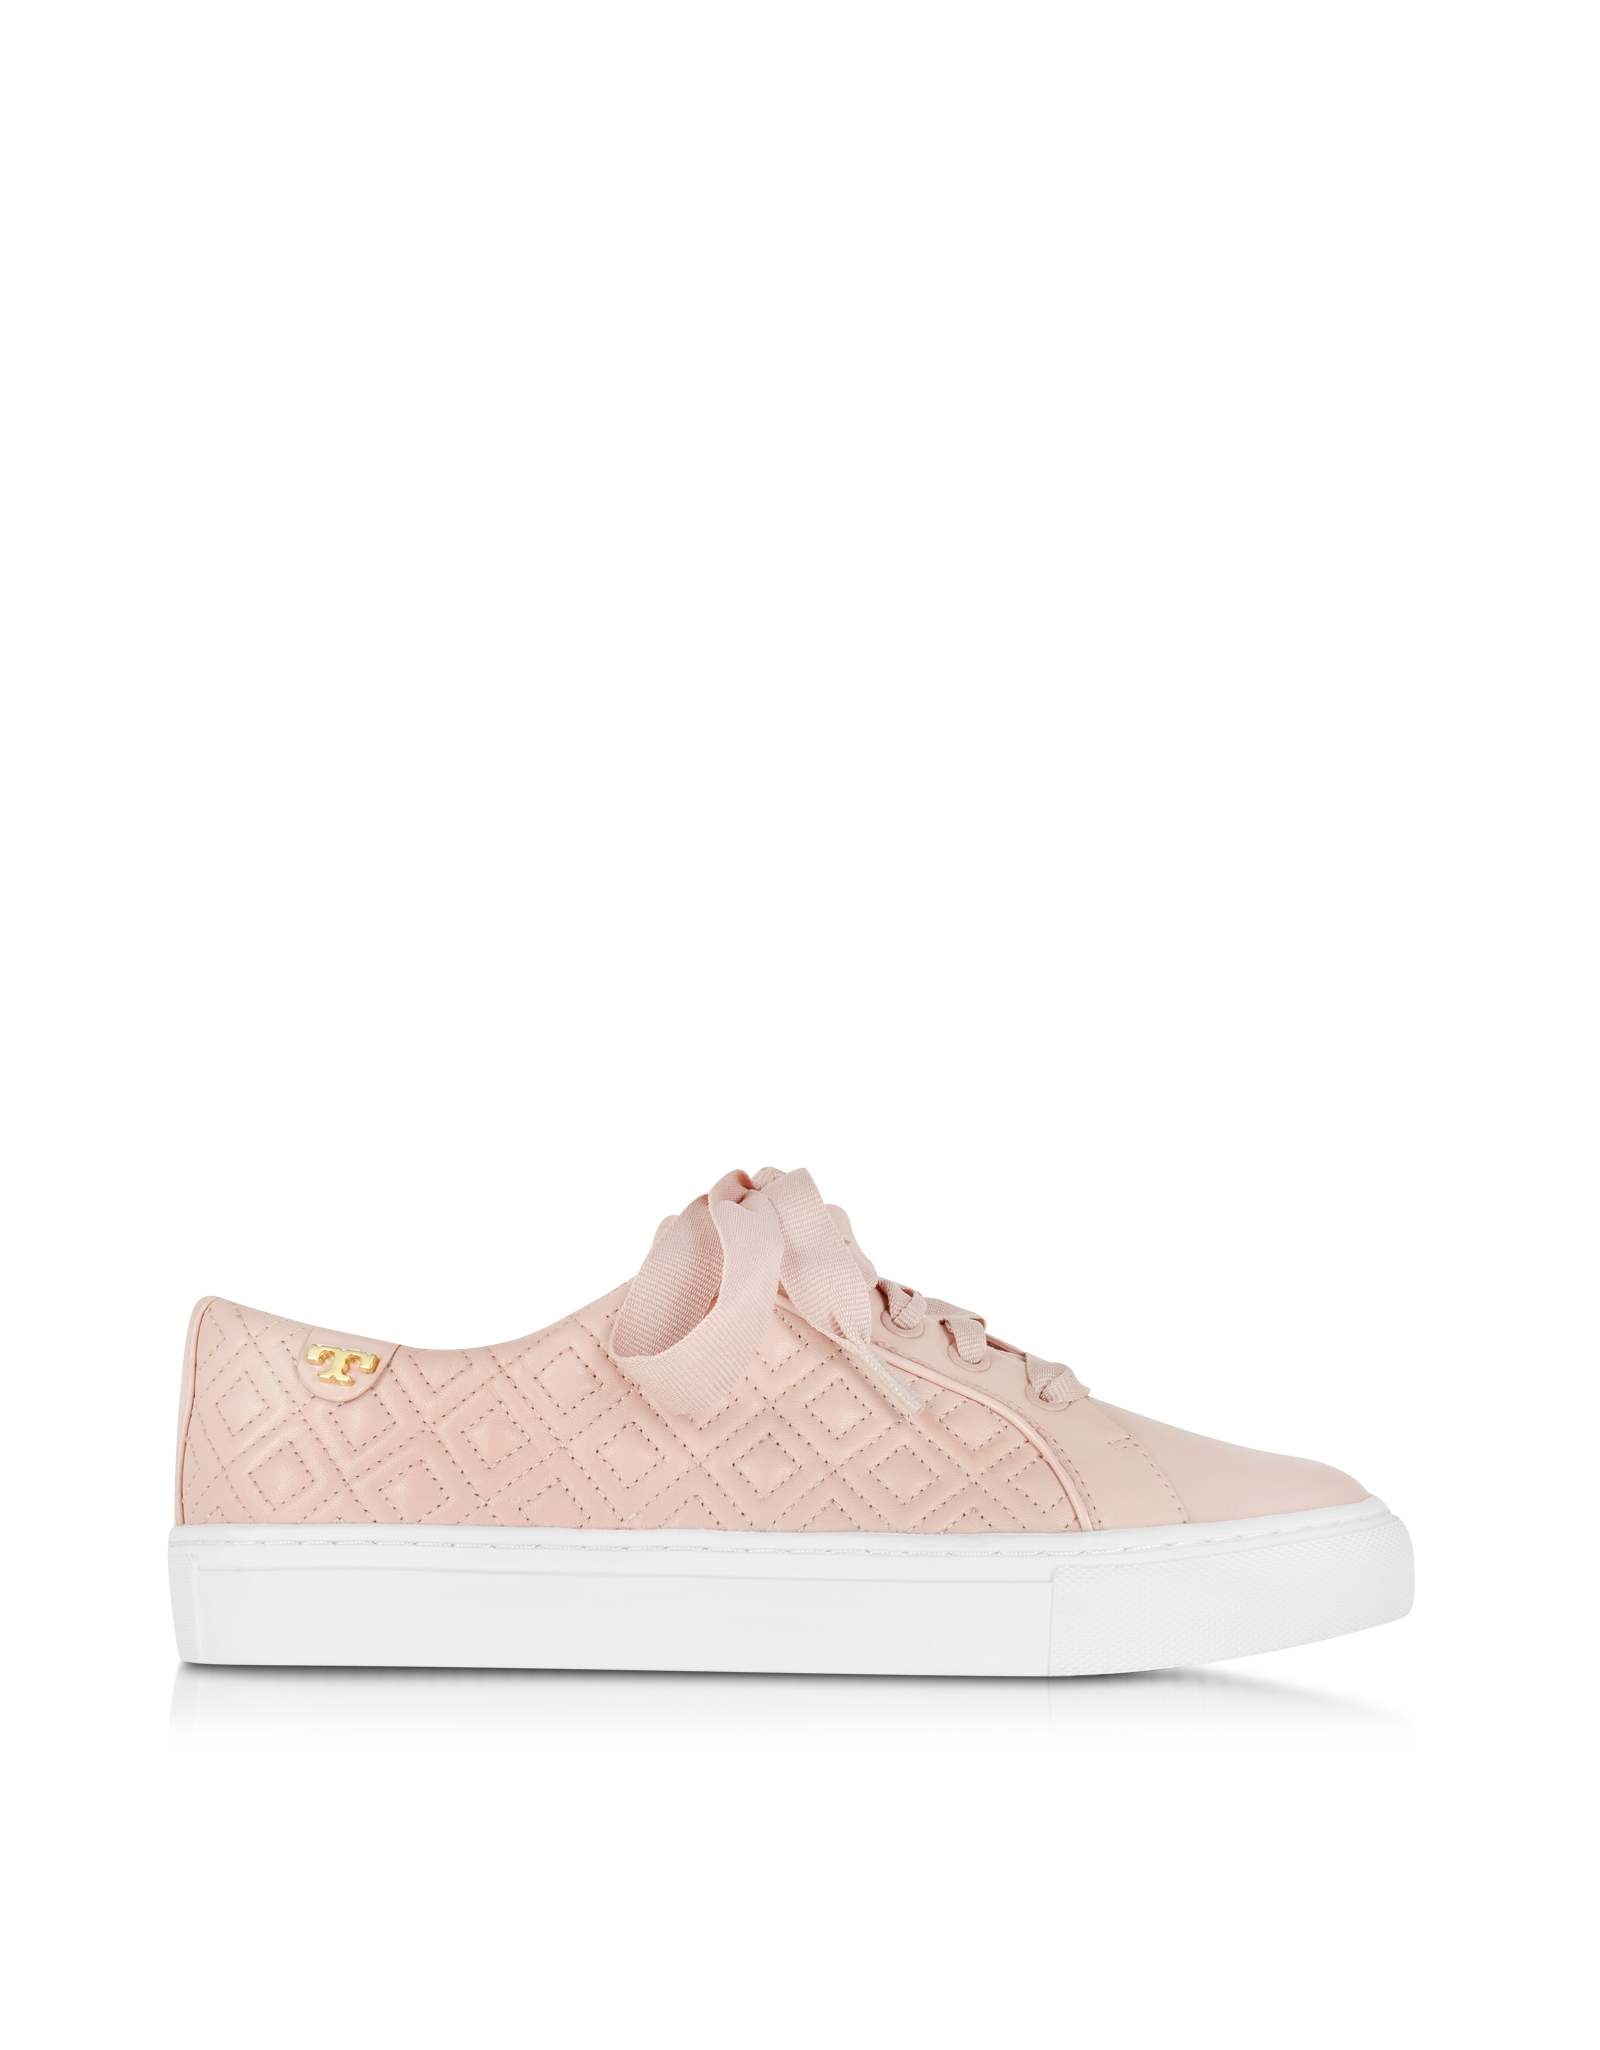 c36792f6b621a Lyst - Tory Burch Marion Sachet Pink Quilted Lace-up Sneaker in Pink